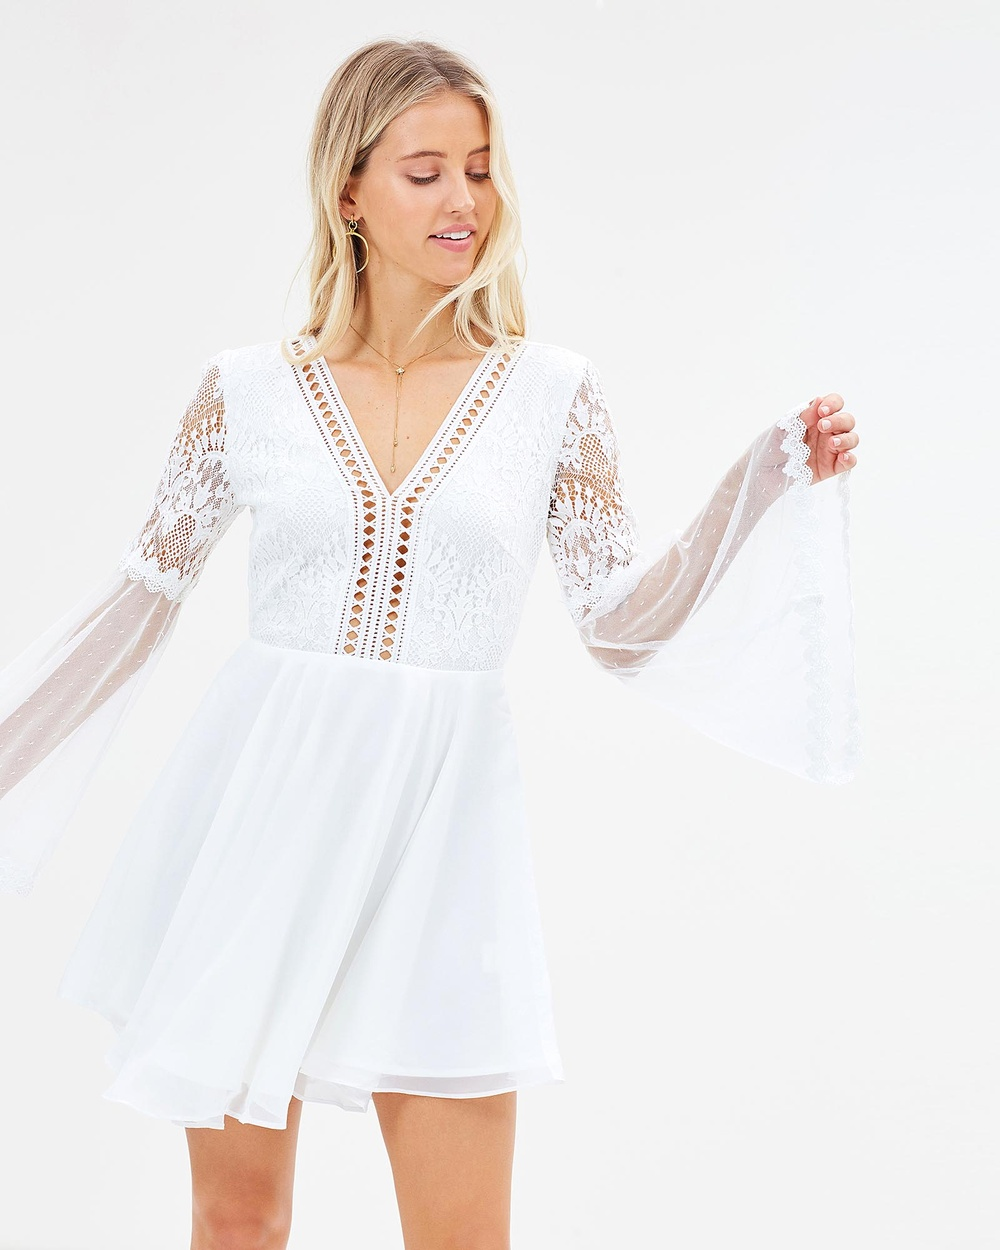 Twosister's The Label Bethany Dress Dresses White Bethany Dress